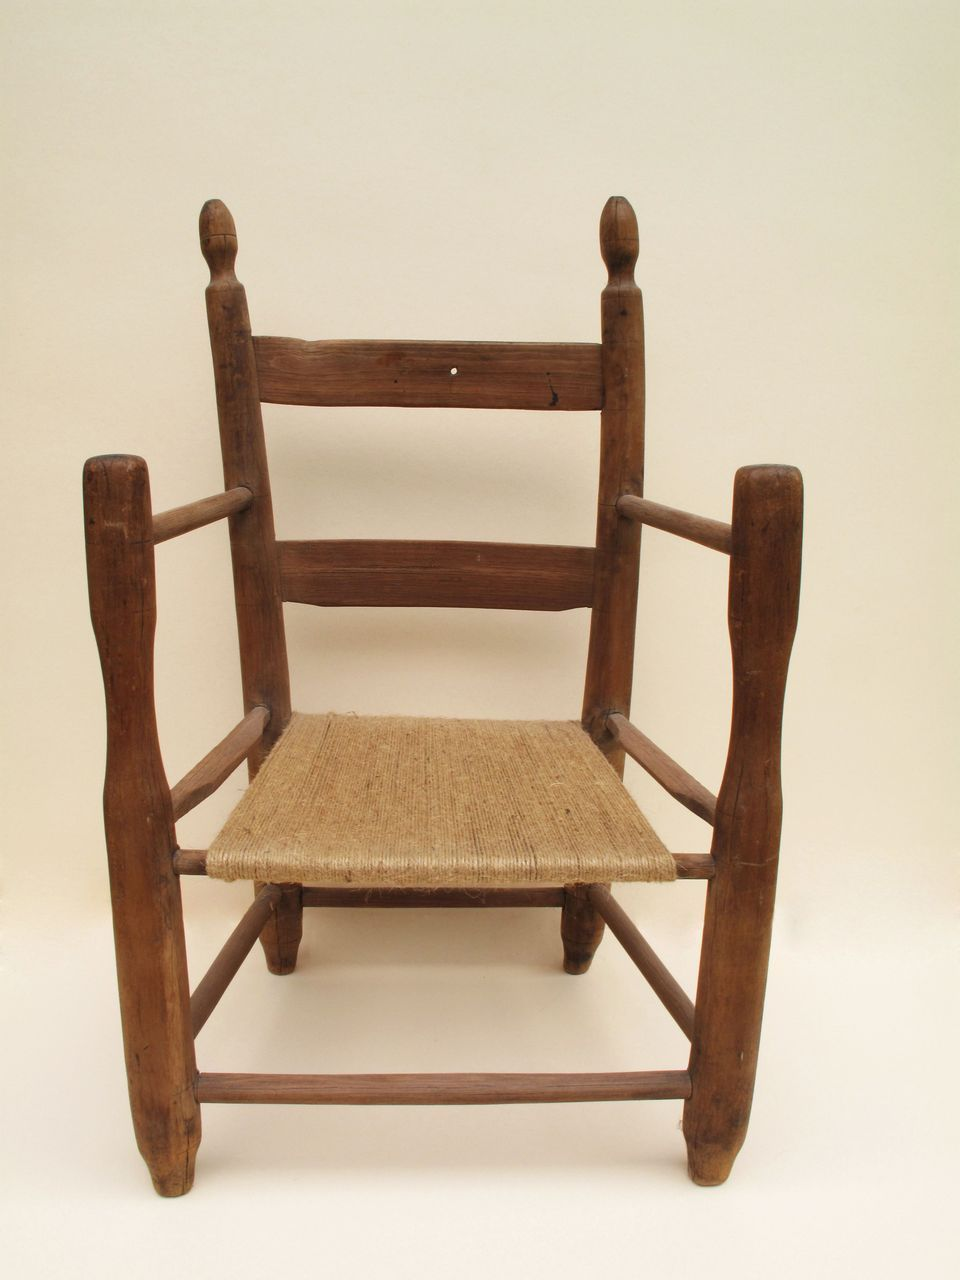 19th Century Child's Chair for Large Cloth Paper Mache or China Doll